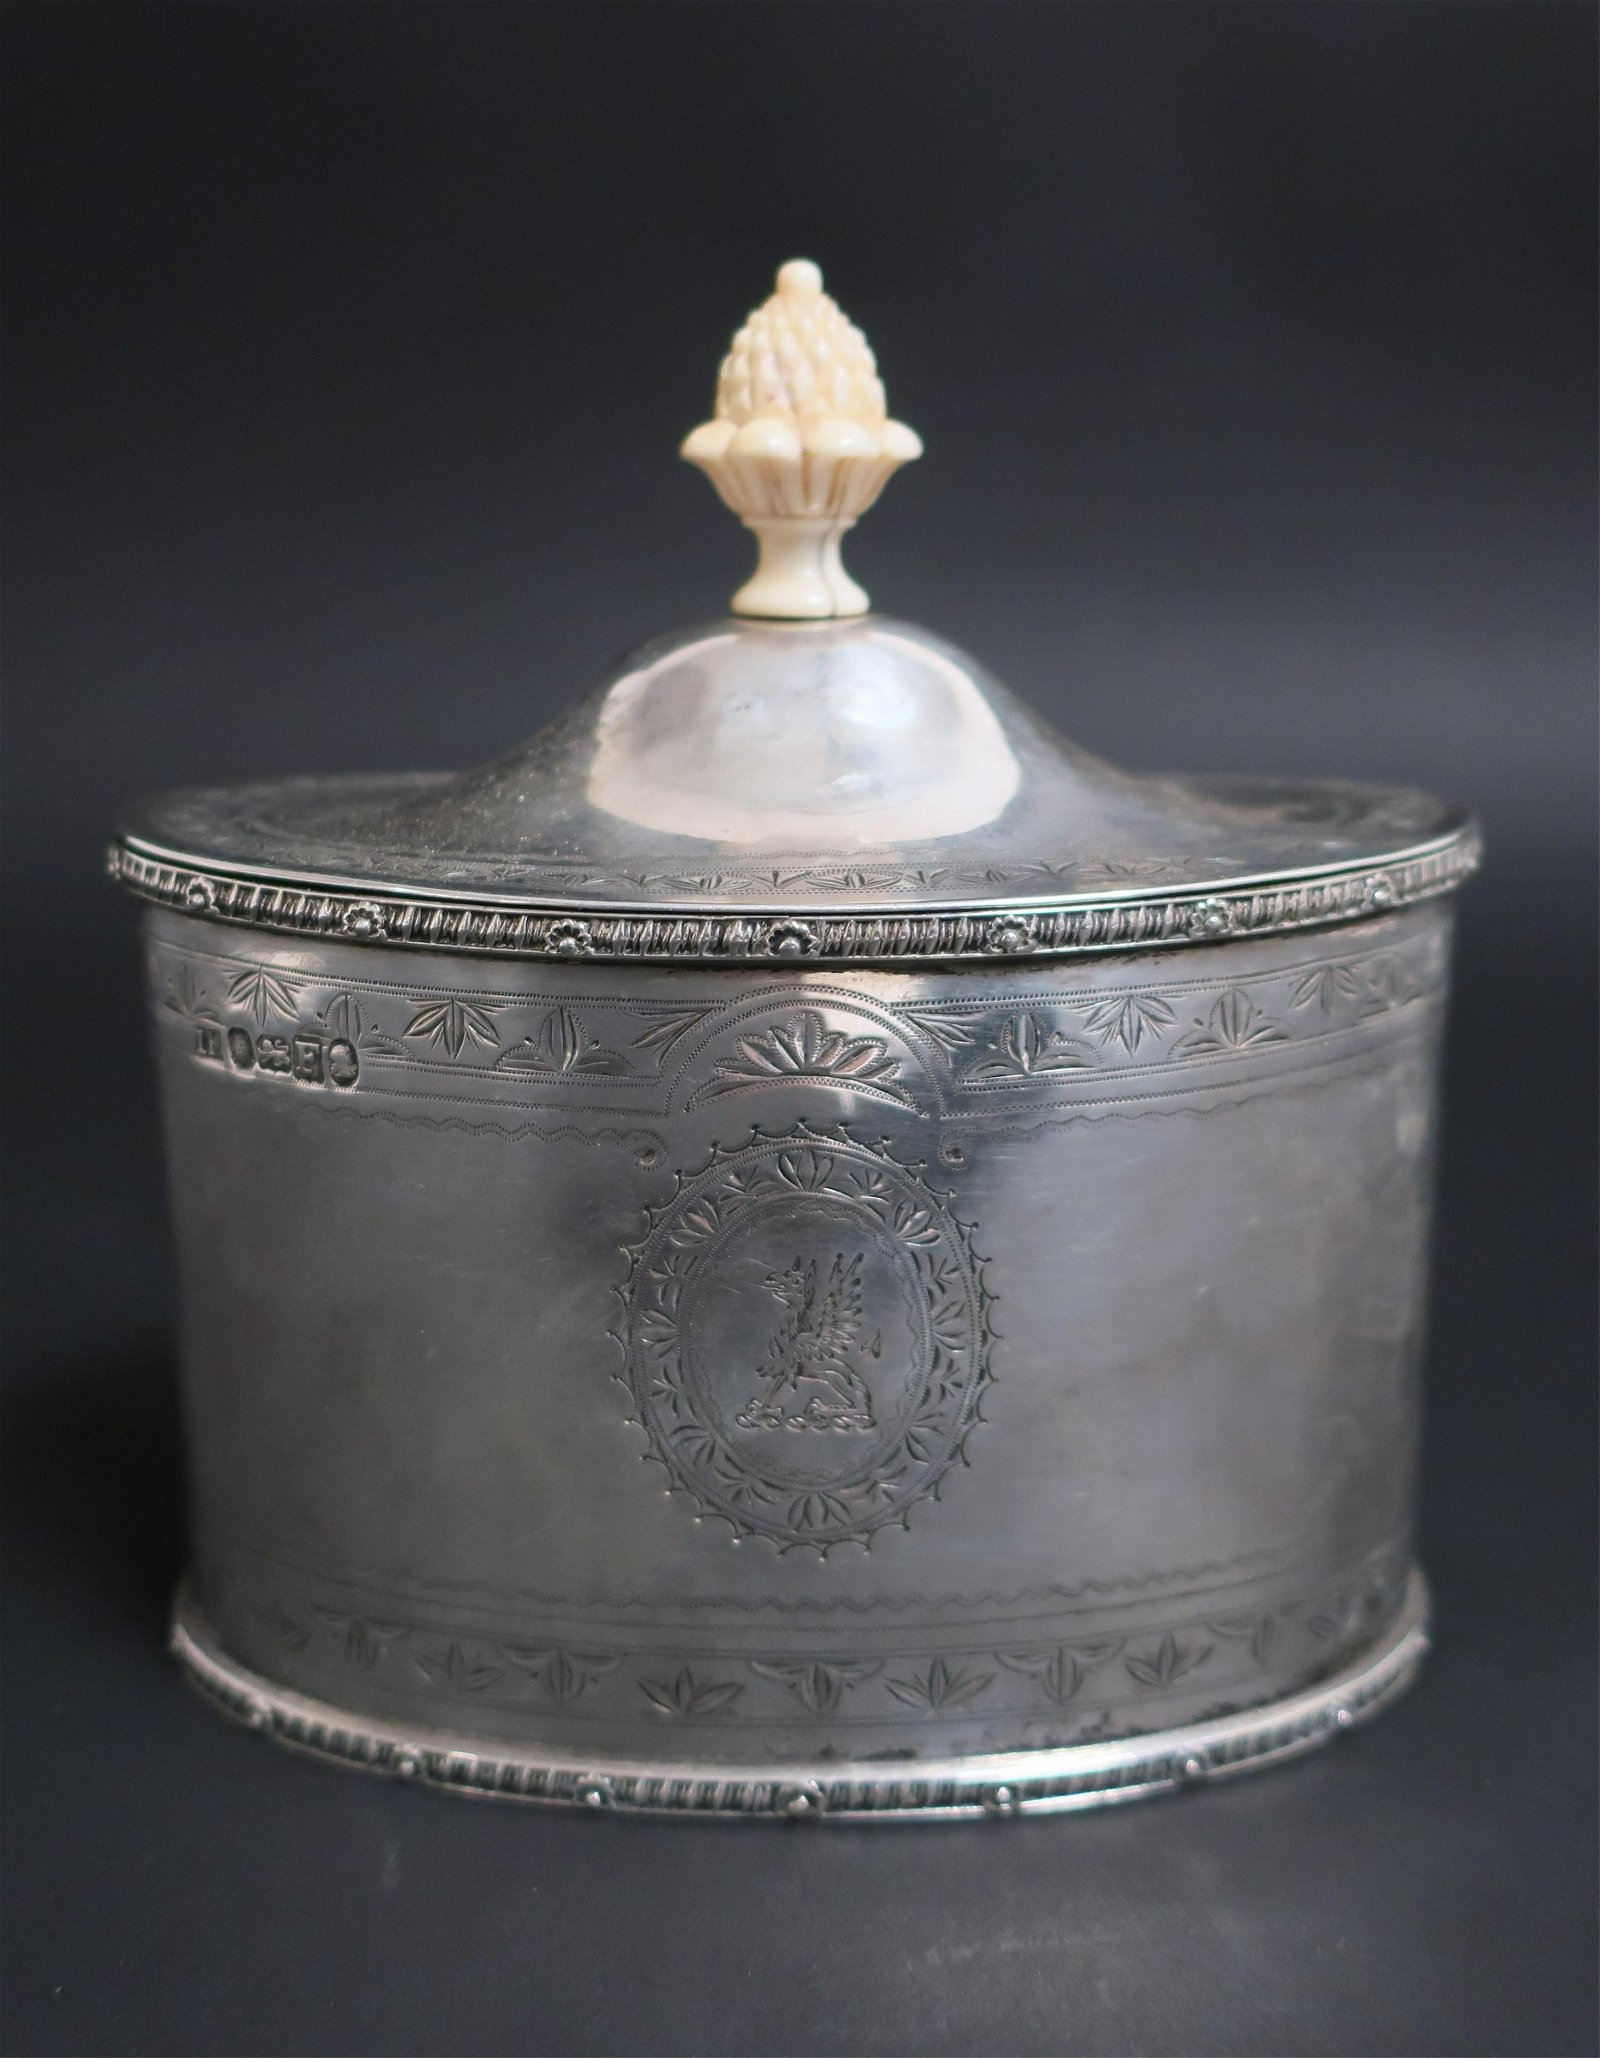 English Sterling Silver Oval Tea Caddy, c.1801-1802